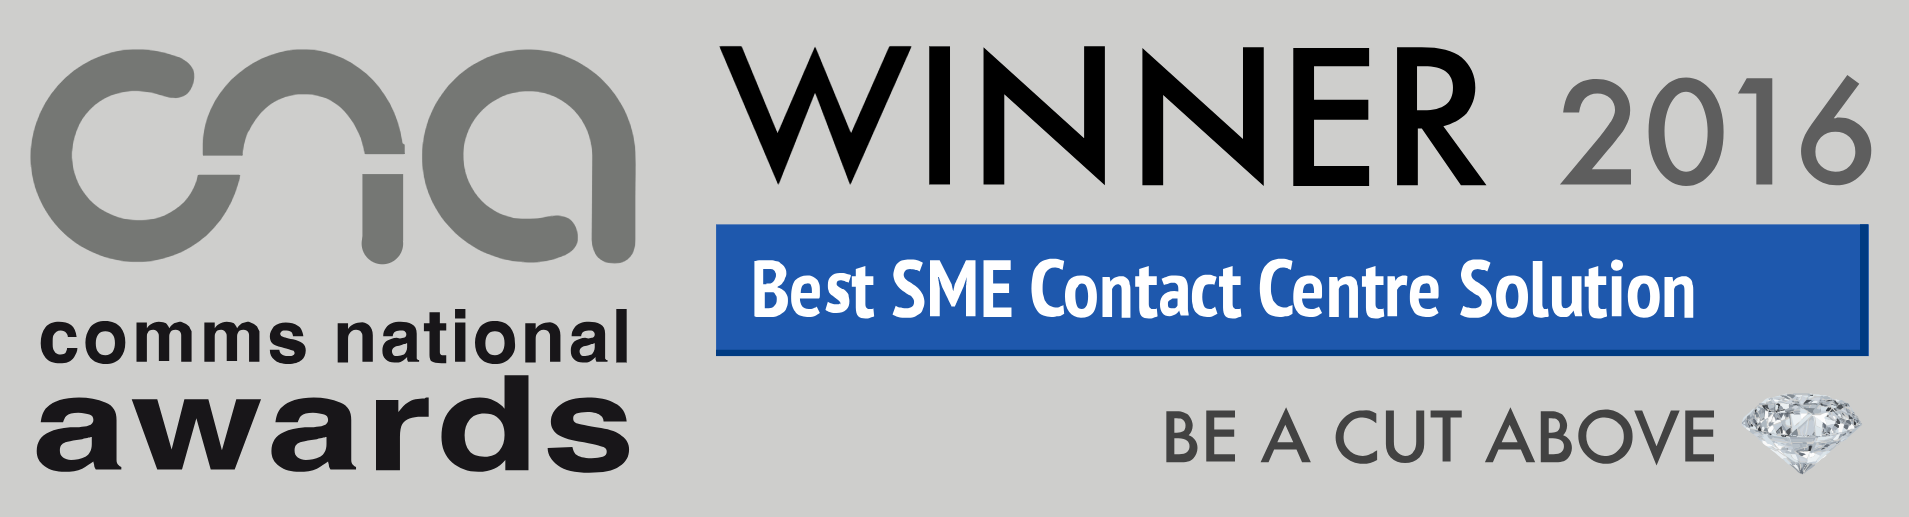 Best SME Contact Centre Solution (Comms National Awards, 2016)